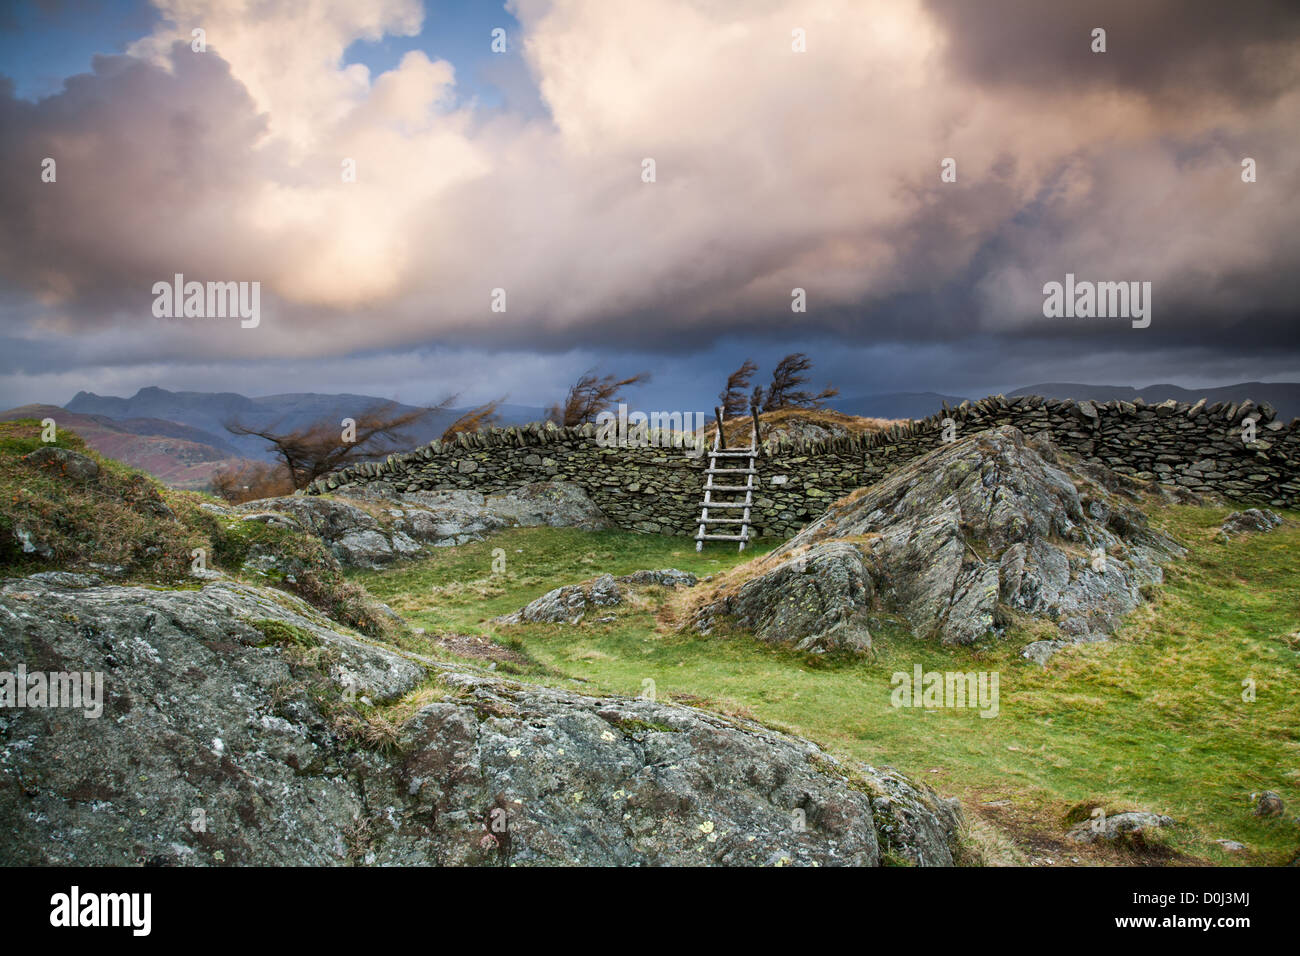 Stormy skies over Black Crag near Windermere. - Stock Image